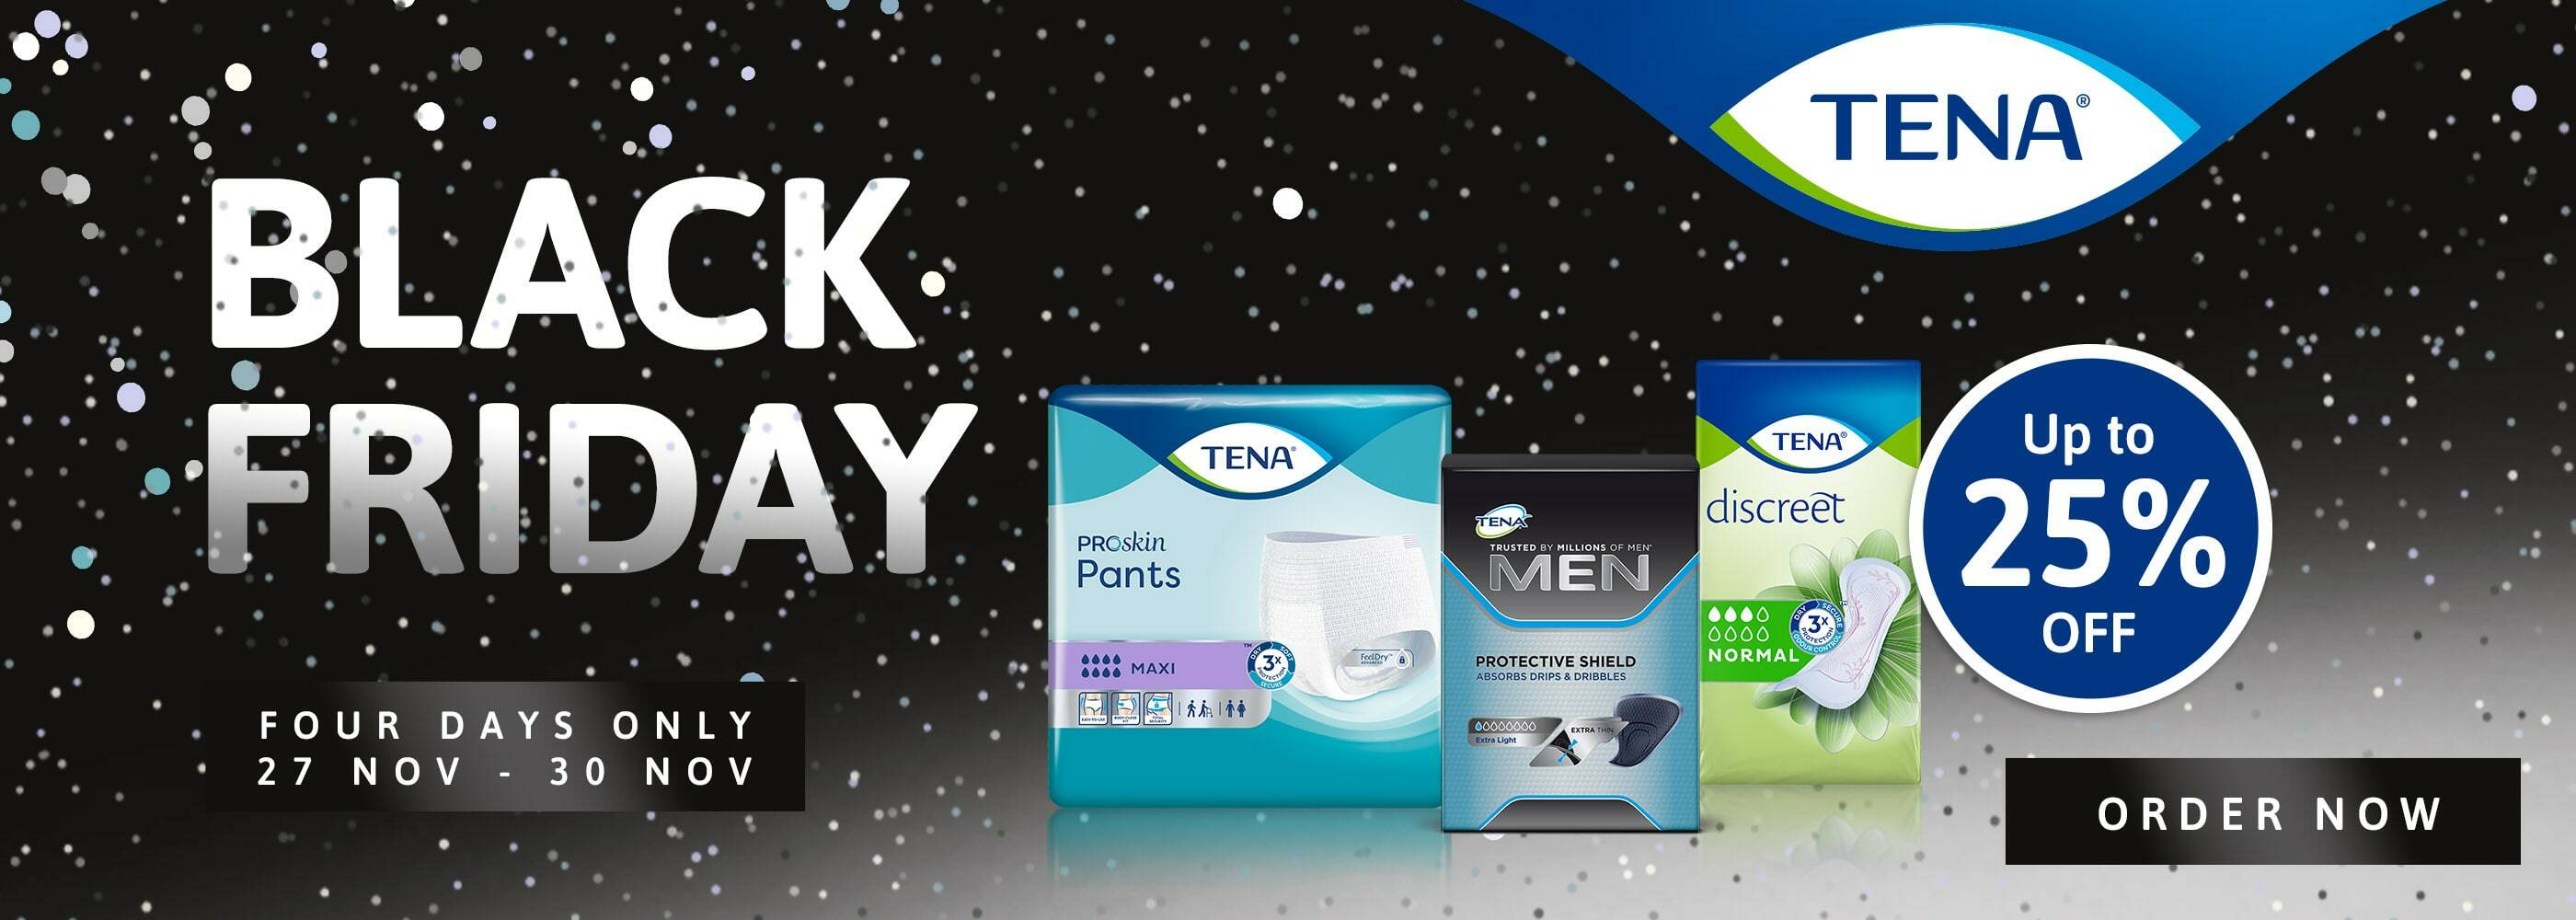 Black Friday - Up to 25% off TENA!